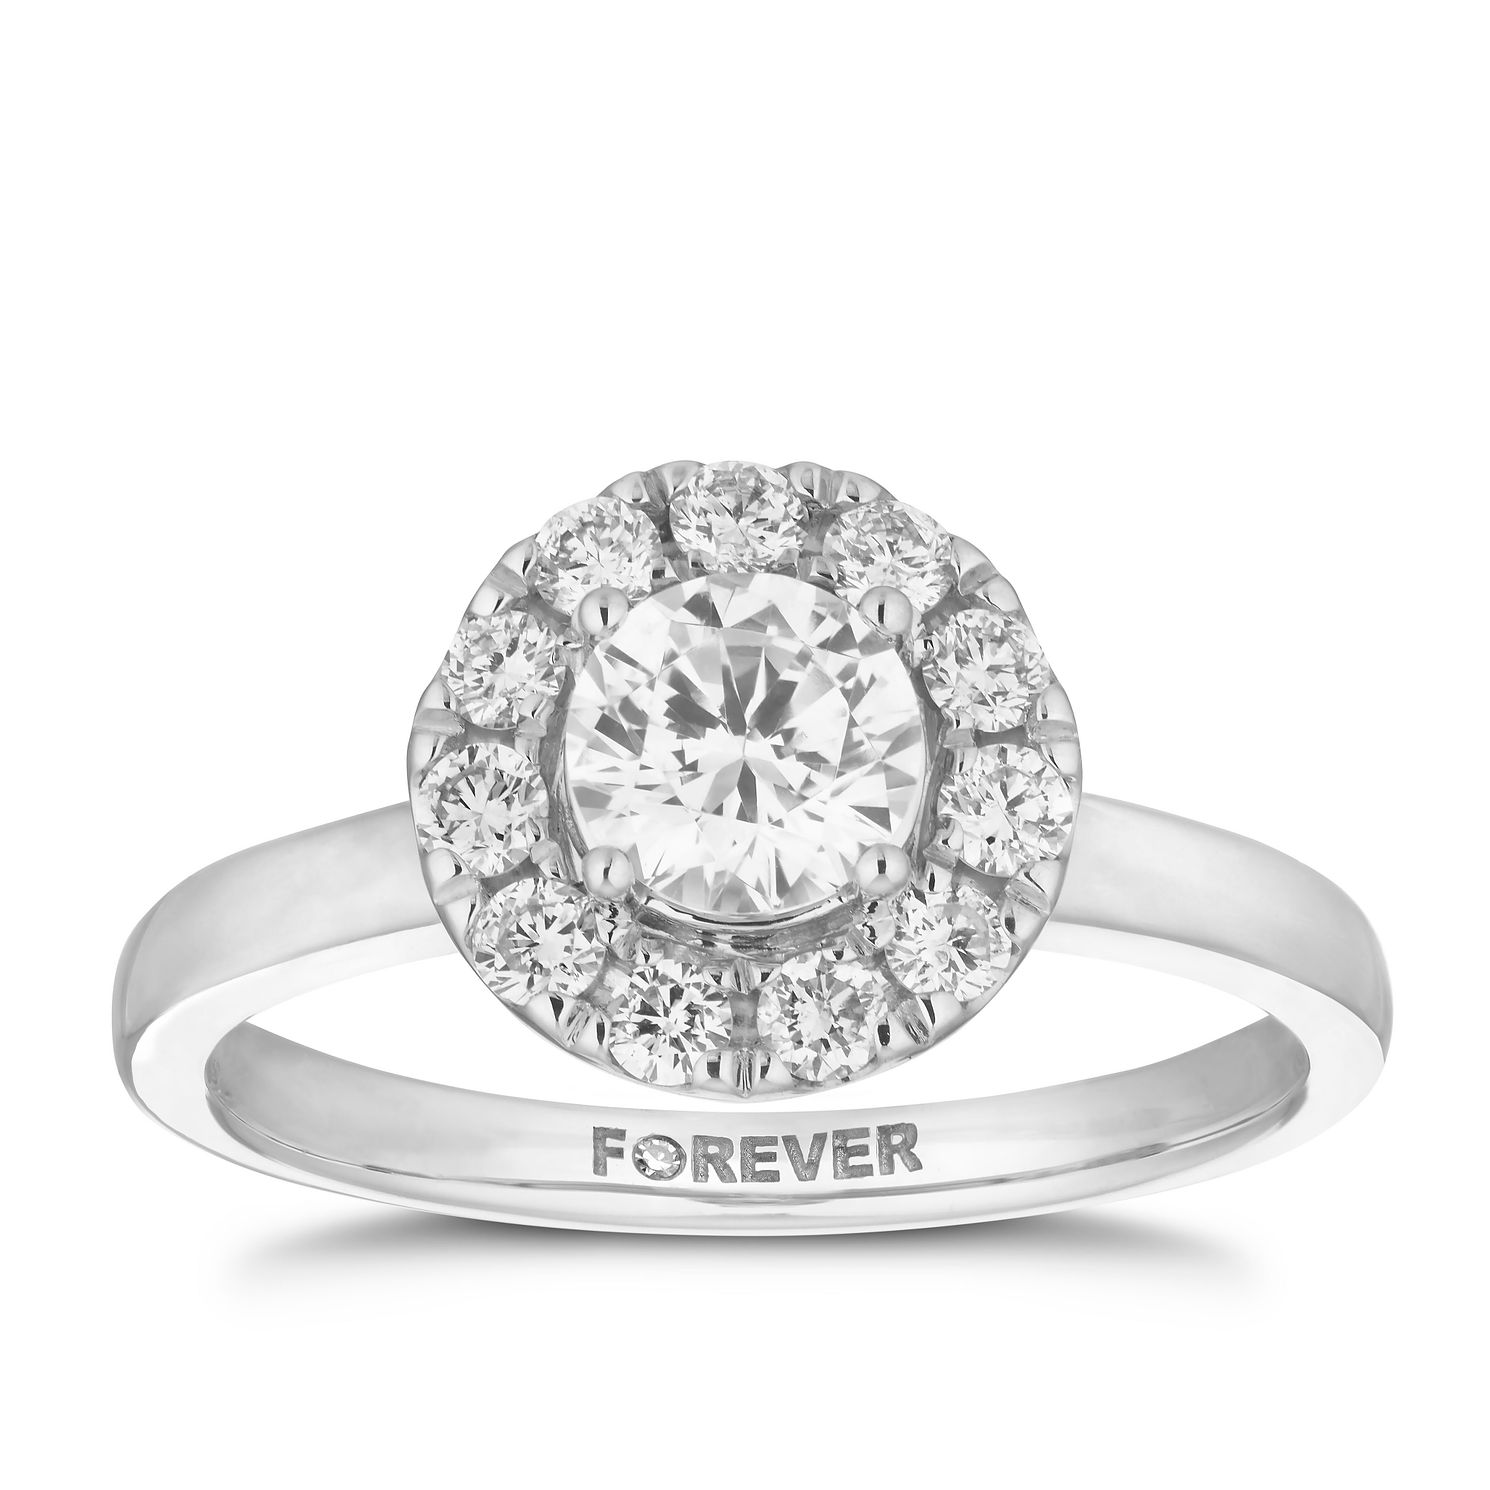 18ct White Gold 1ct Forever Diamond Halo Ring - Product number 5863759